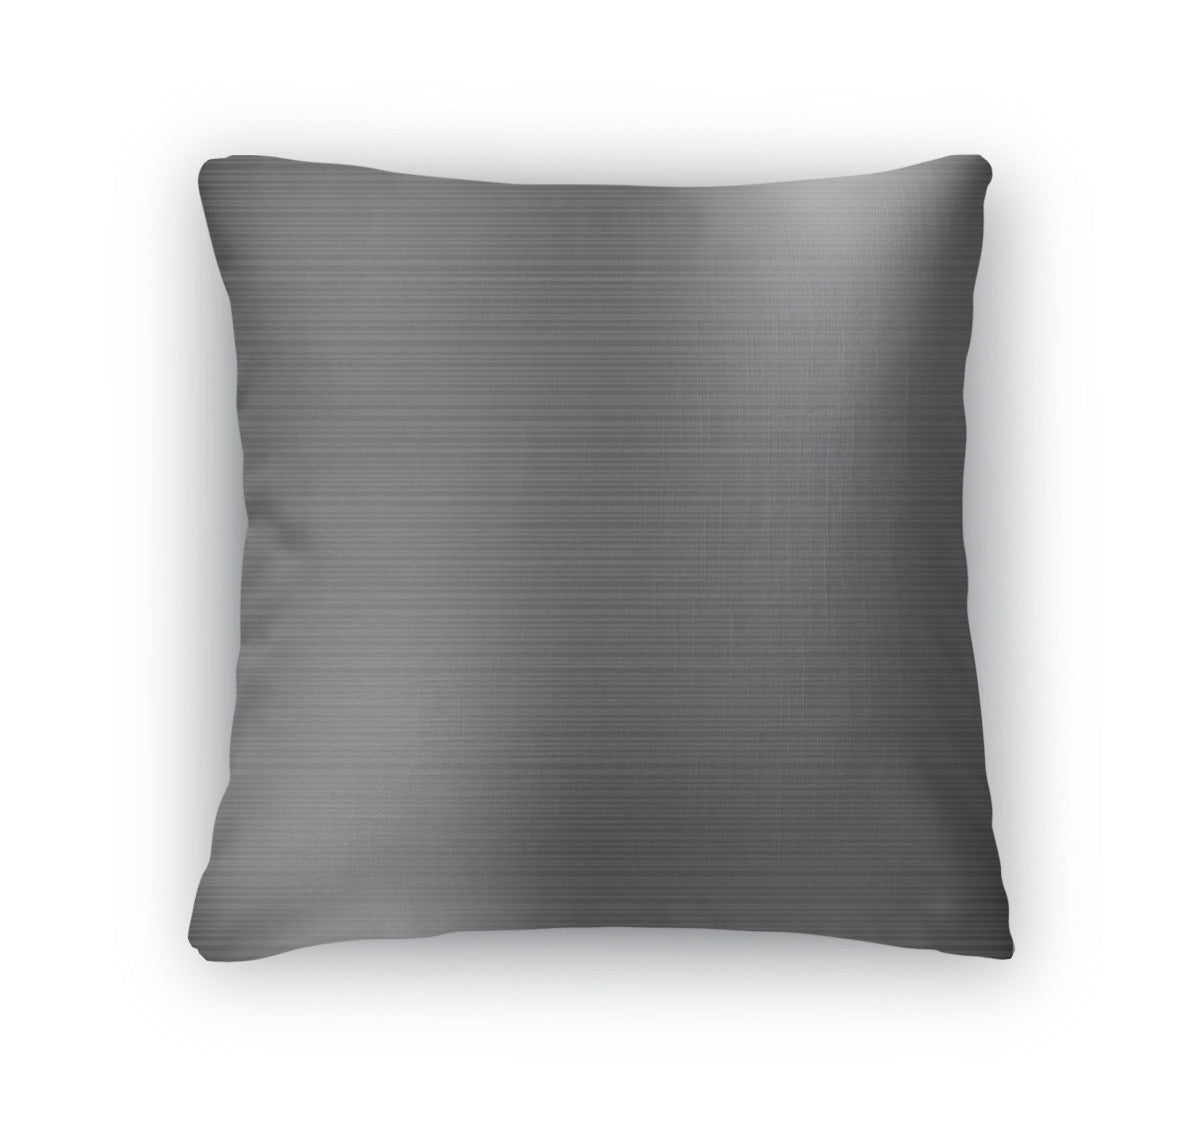 Throw Pillow, Dark Grey Brushed Metal Industrial - fashionbests